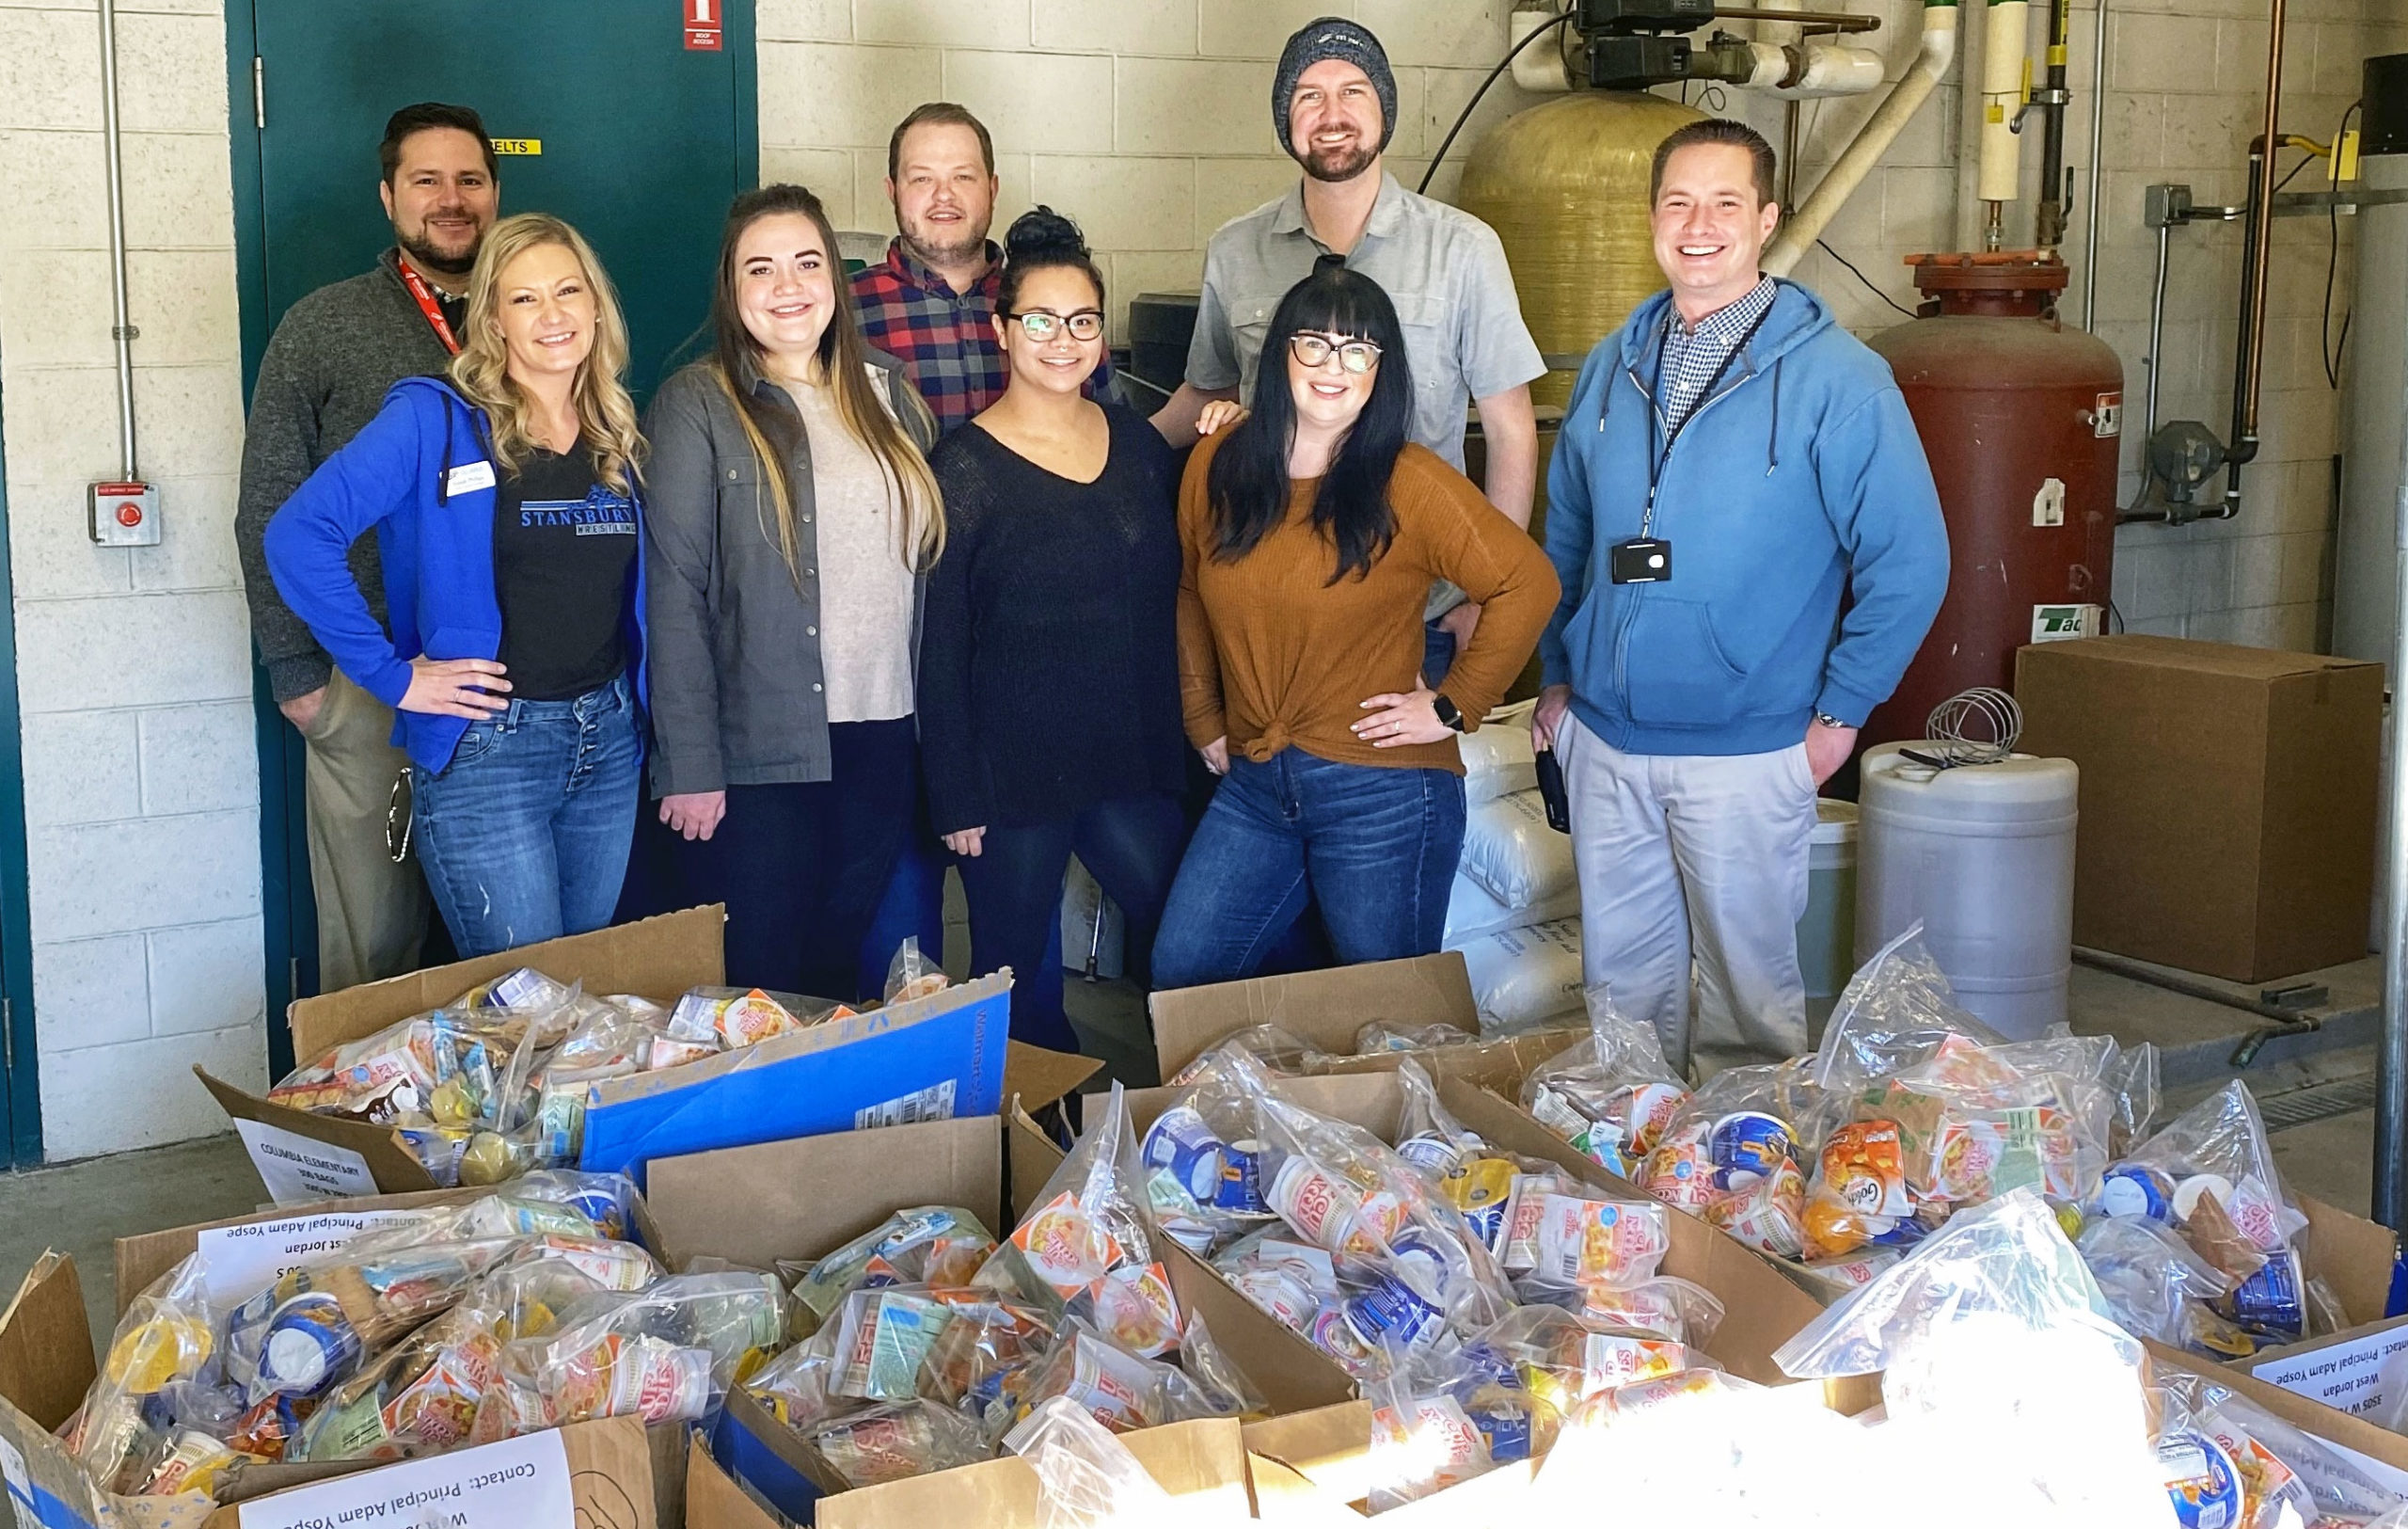 Employees stand with food donation